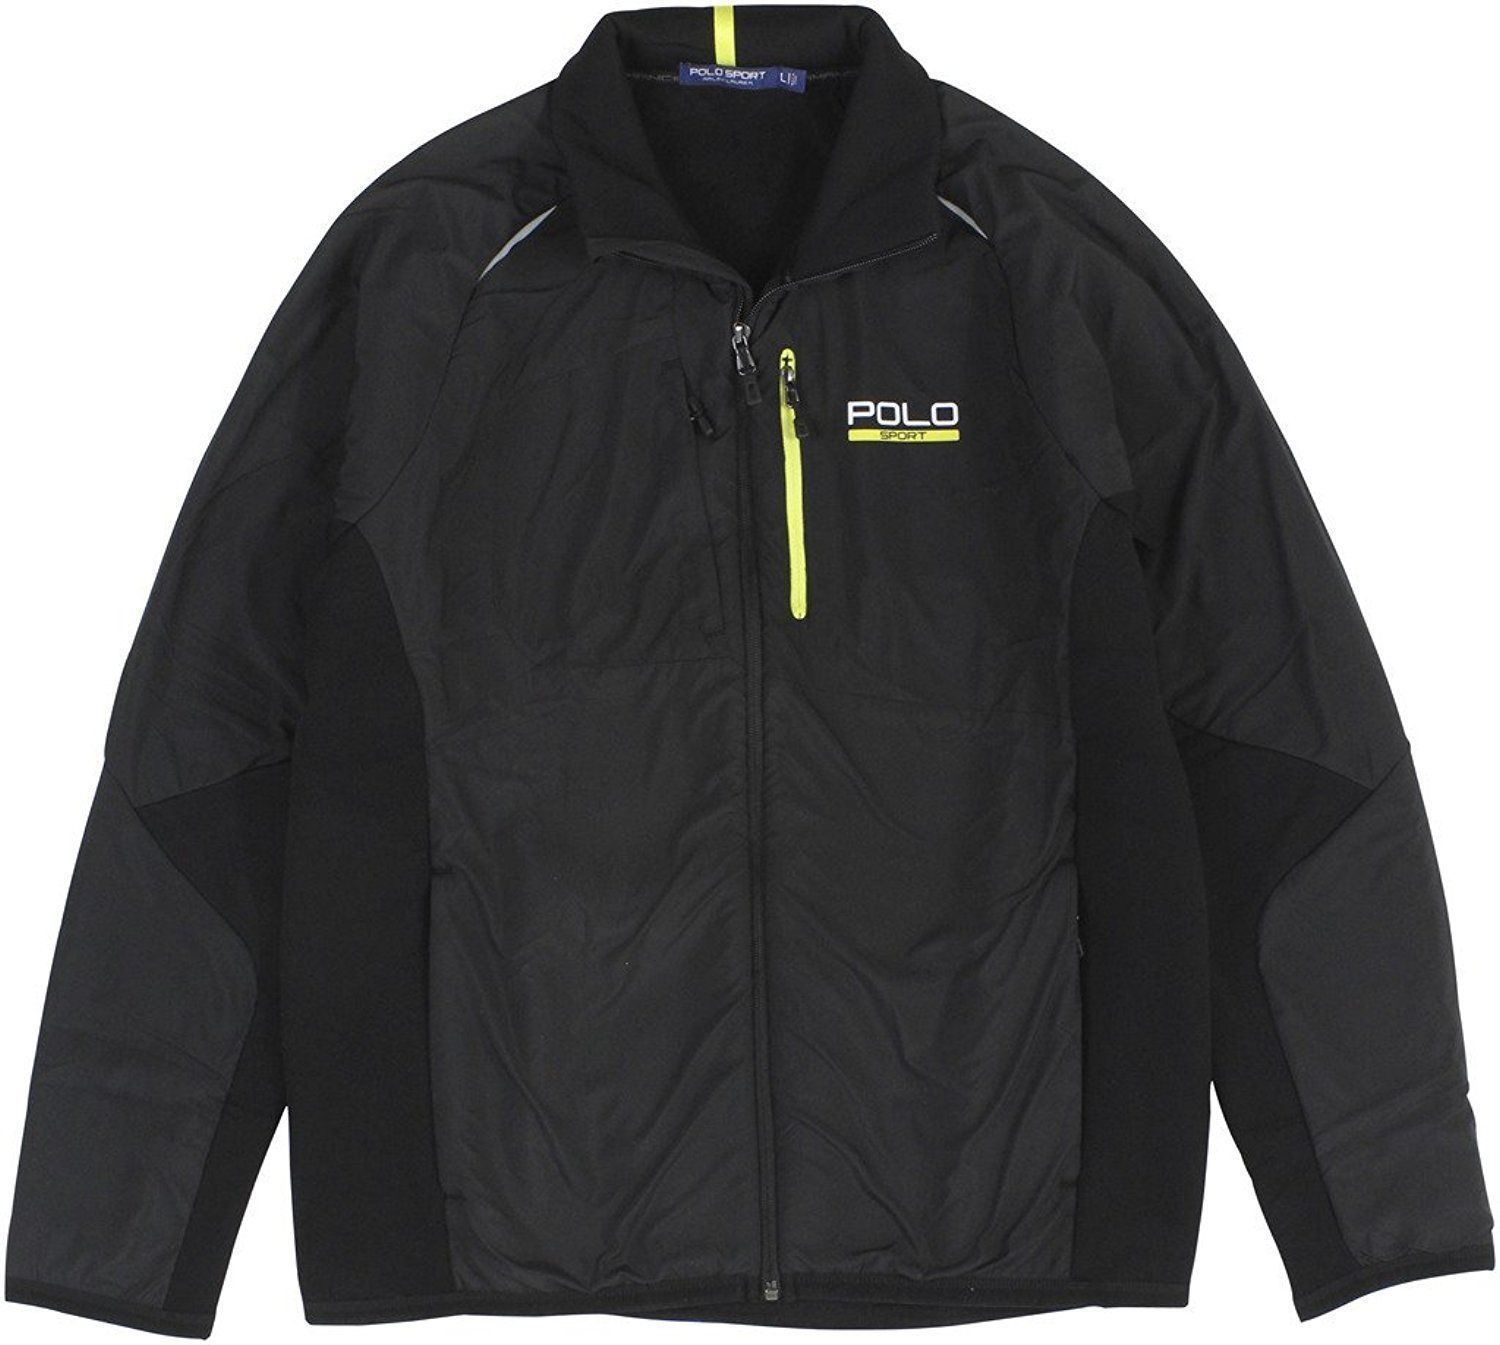 Primary image for NEW RALPH LAUREN POLO SPORT MEN'S XXL 2XL BLACK FULL-ZIP HYBRID TECH JACKET $225